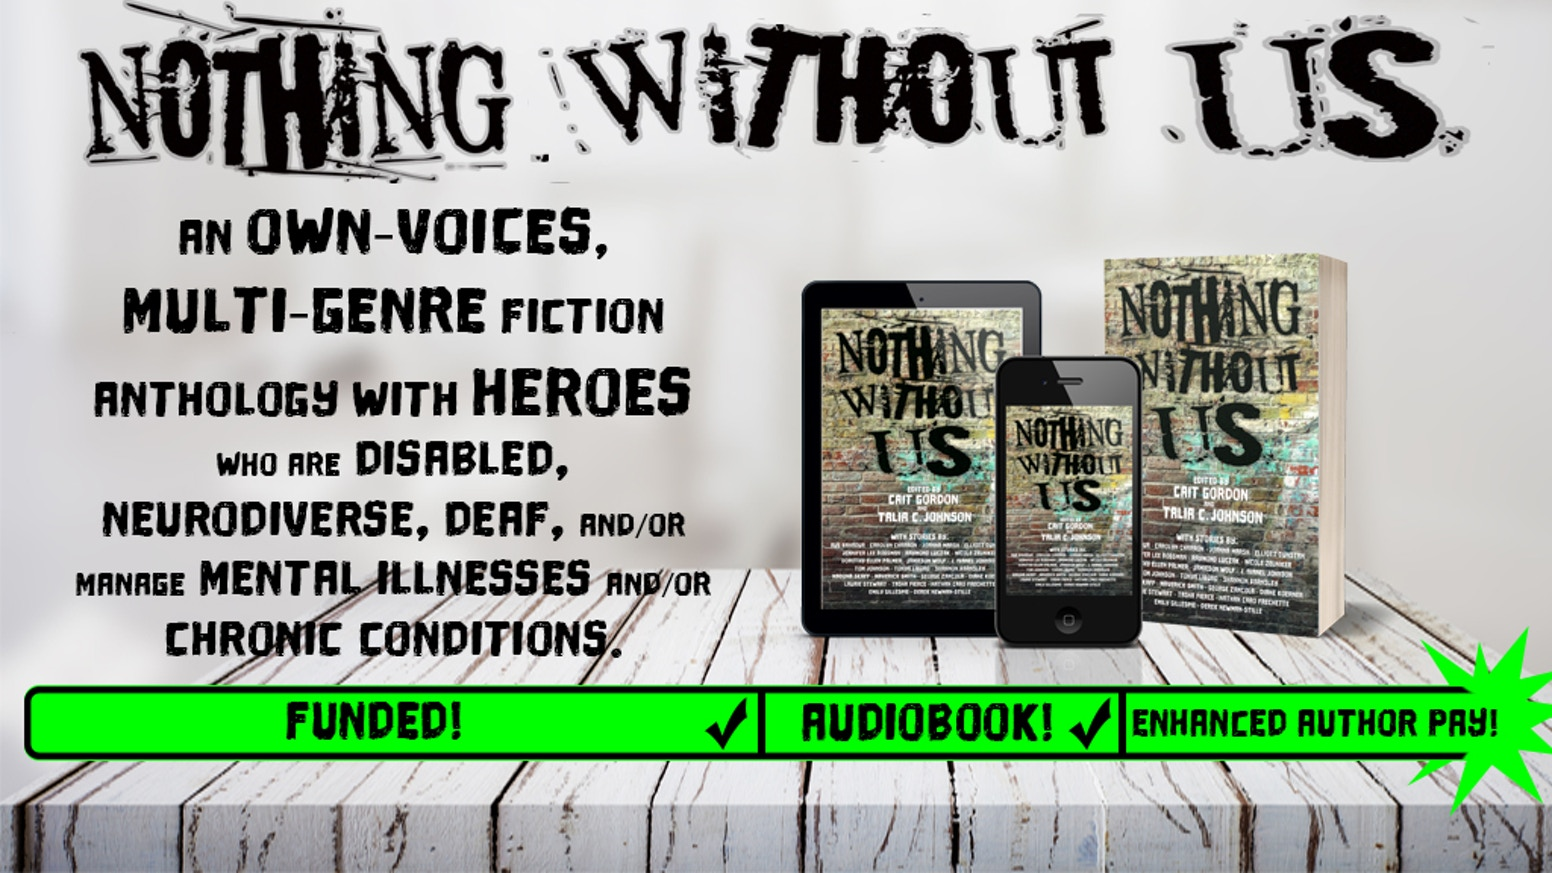 An own-voices, multi-genre fiction anthology with heroes who are disabled, neurodiverse, Deaf, living with mental illness.